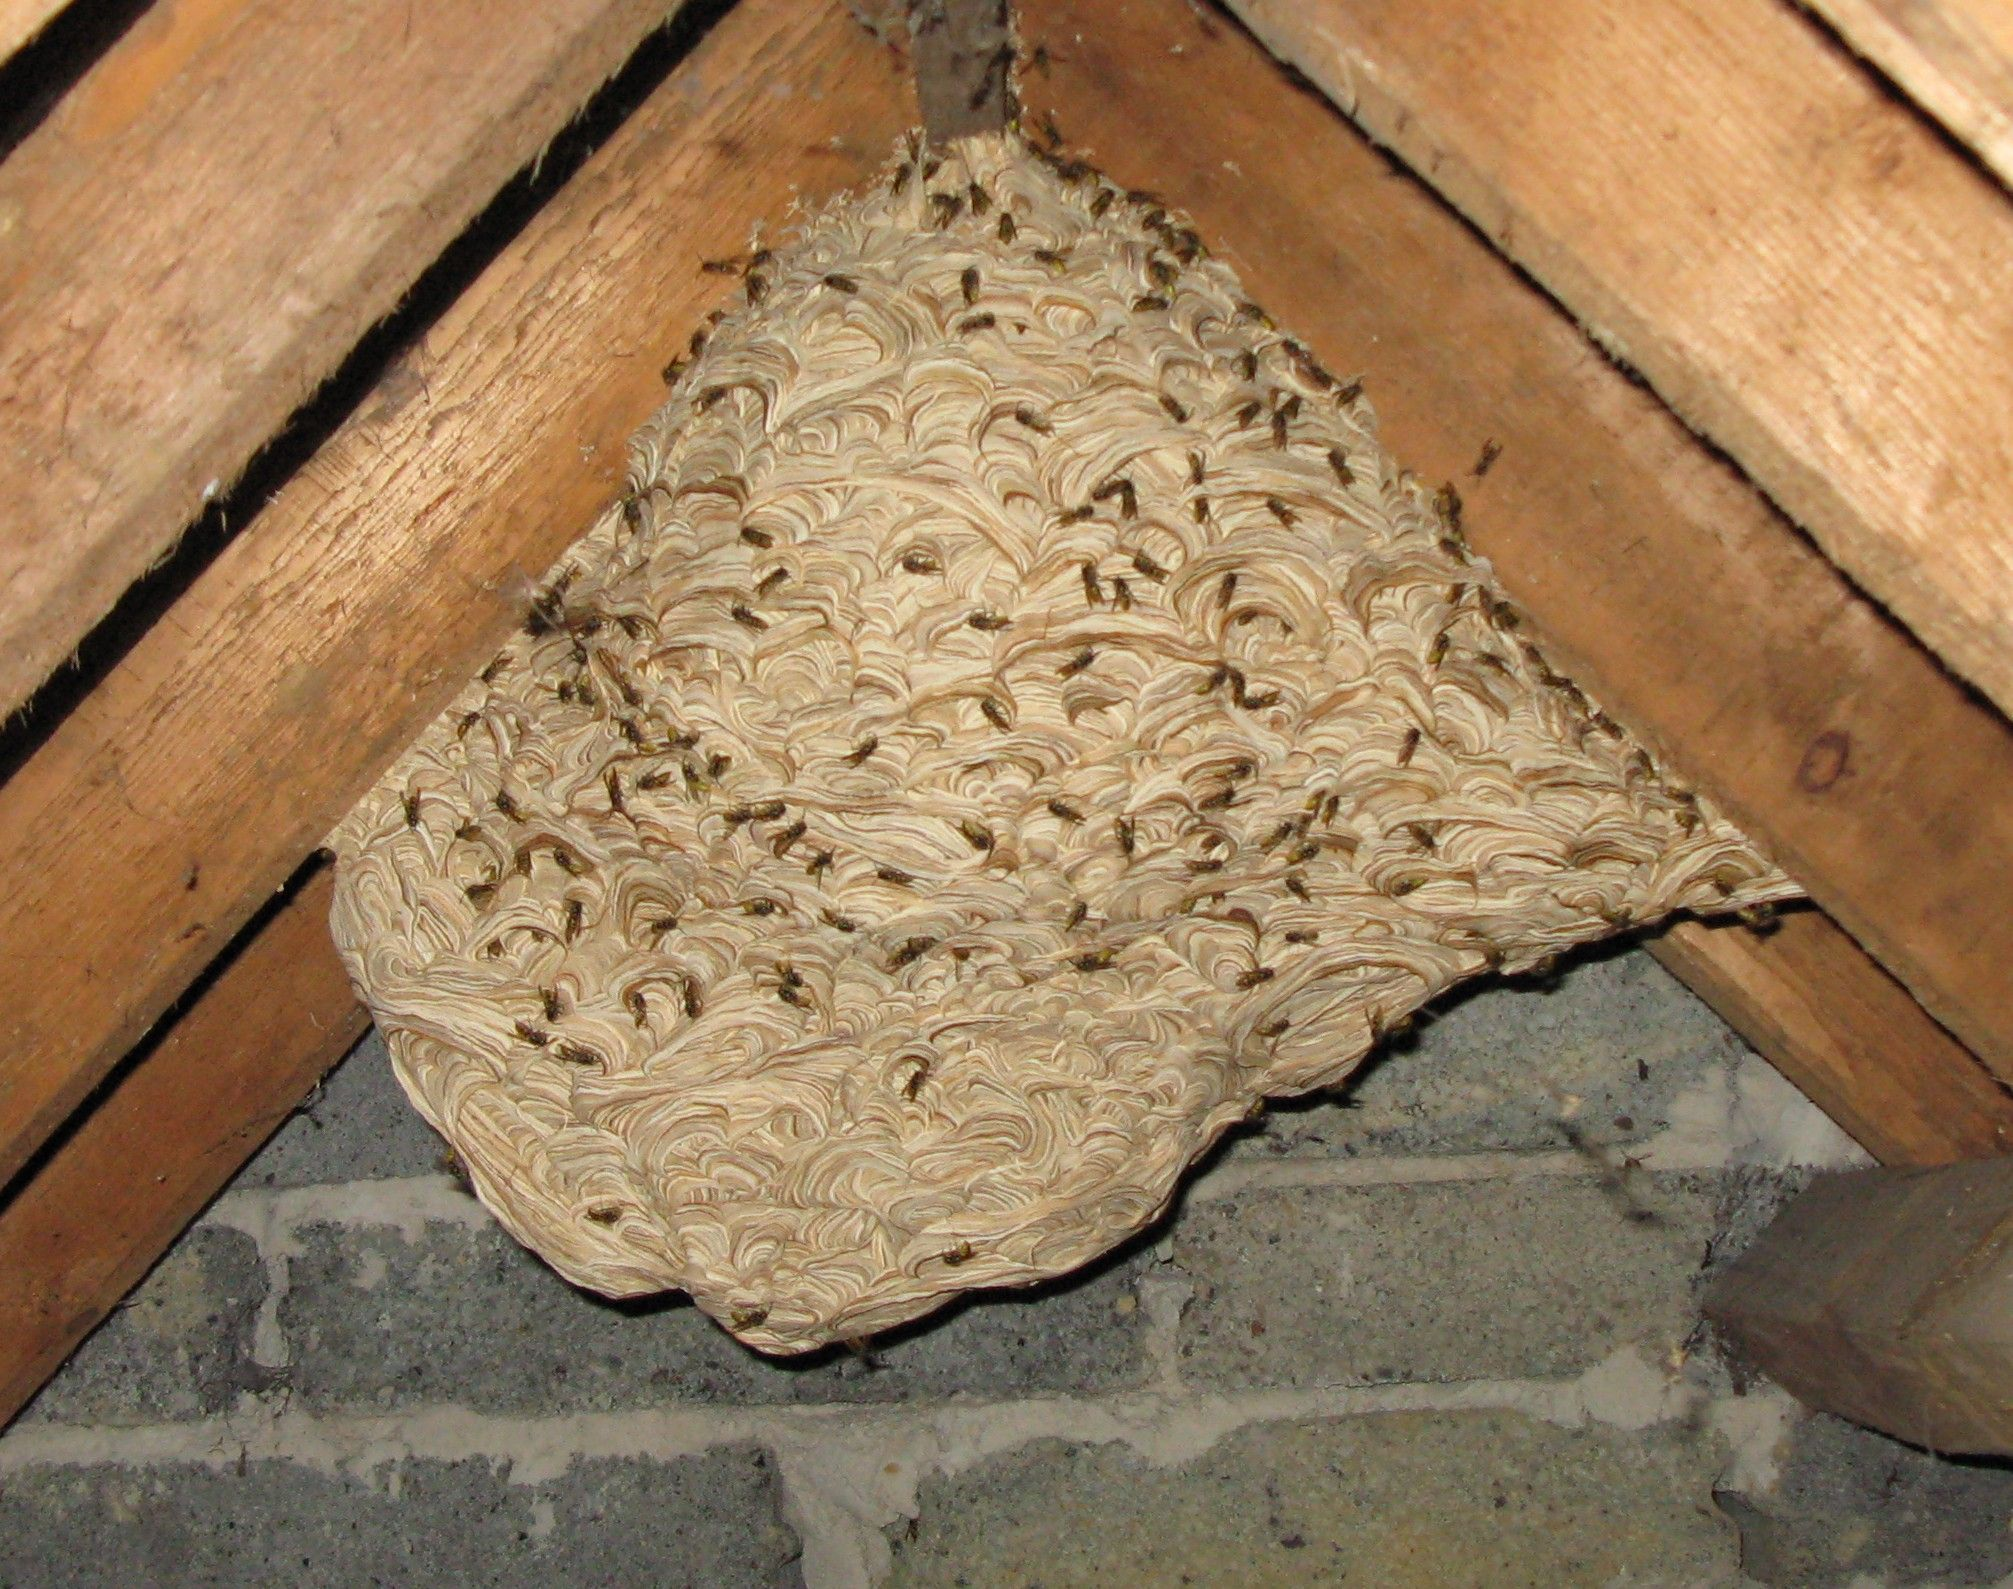 Yellow Jacket Nests Had A Large Yellow Jacket Nest